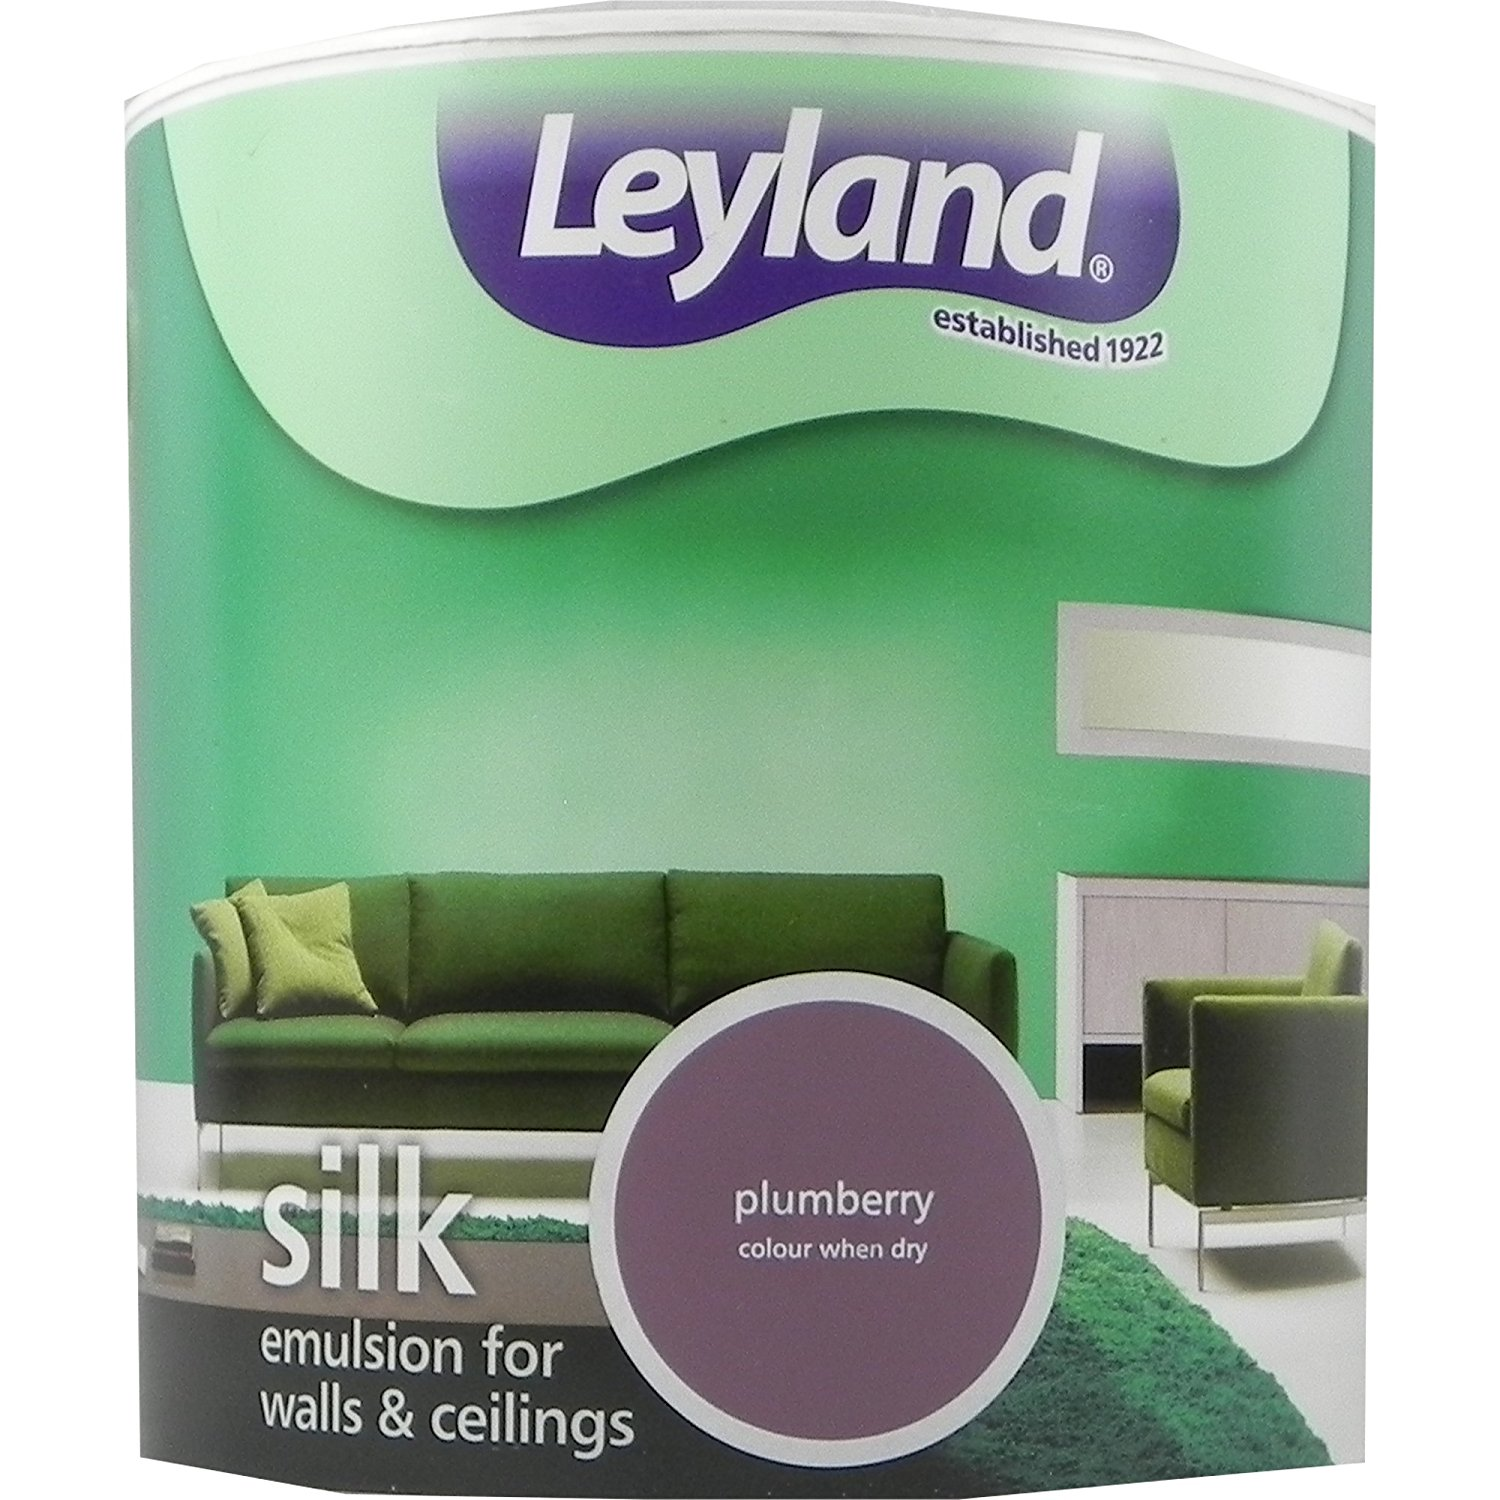 Cheap Vinyl Silk Emulsion Paint Leyland Paint Silk